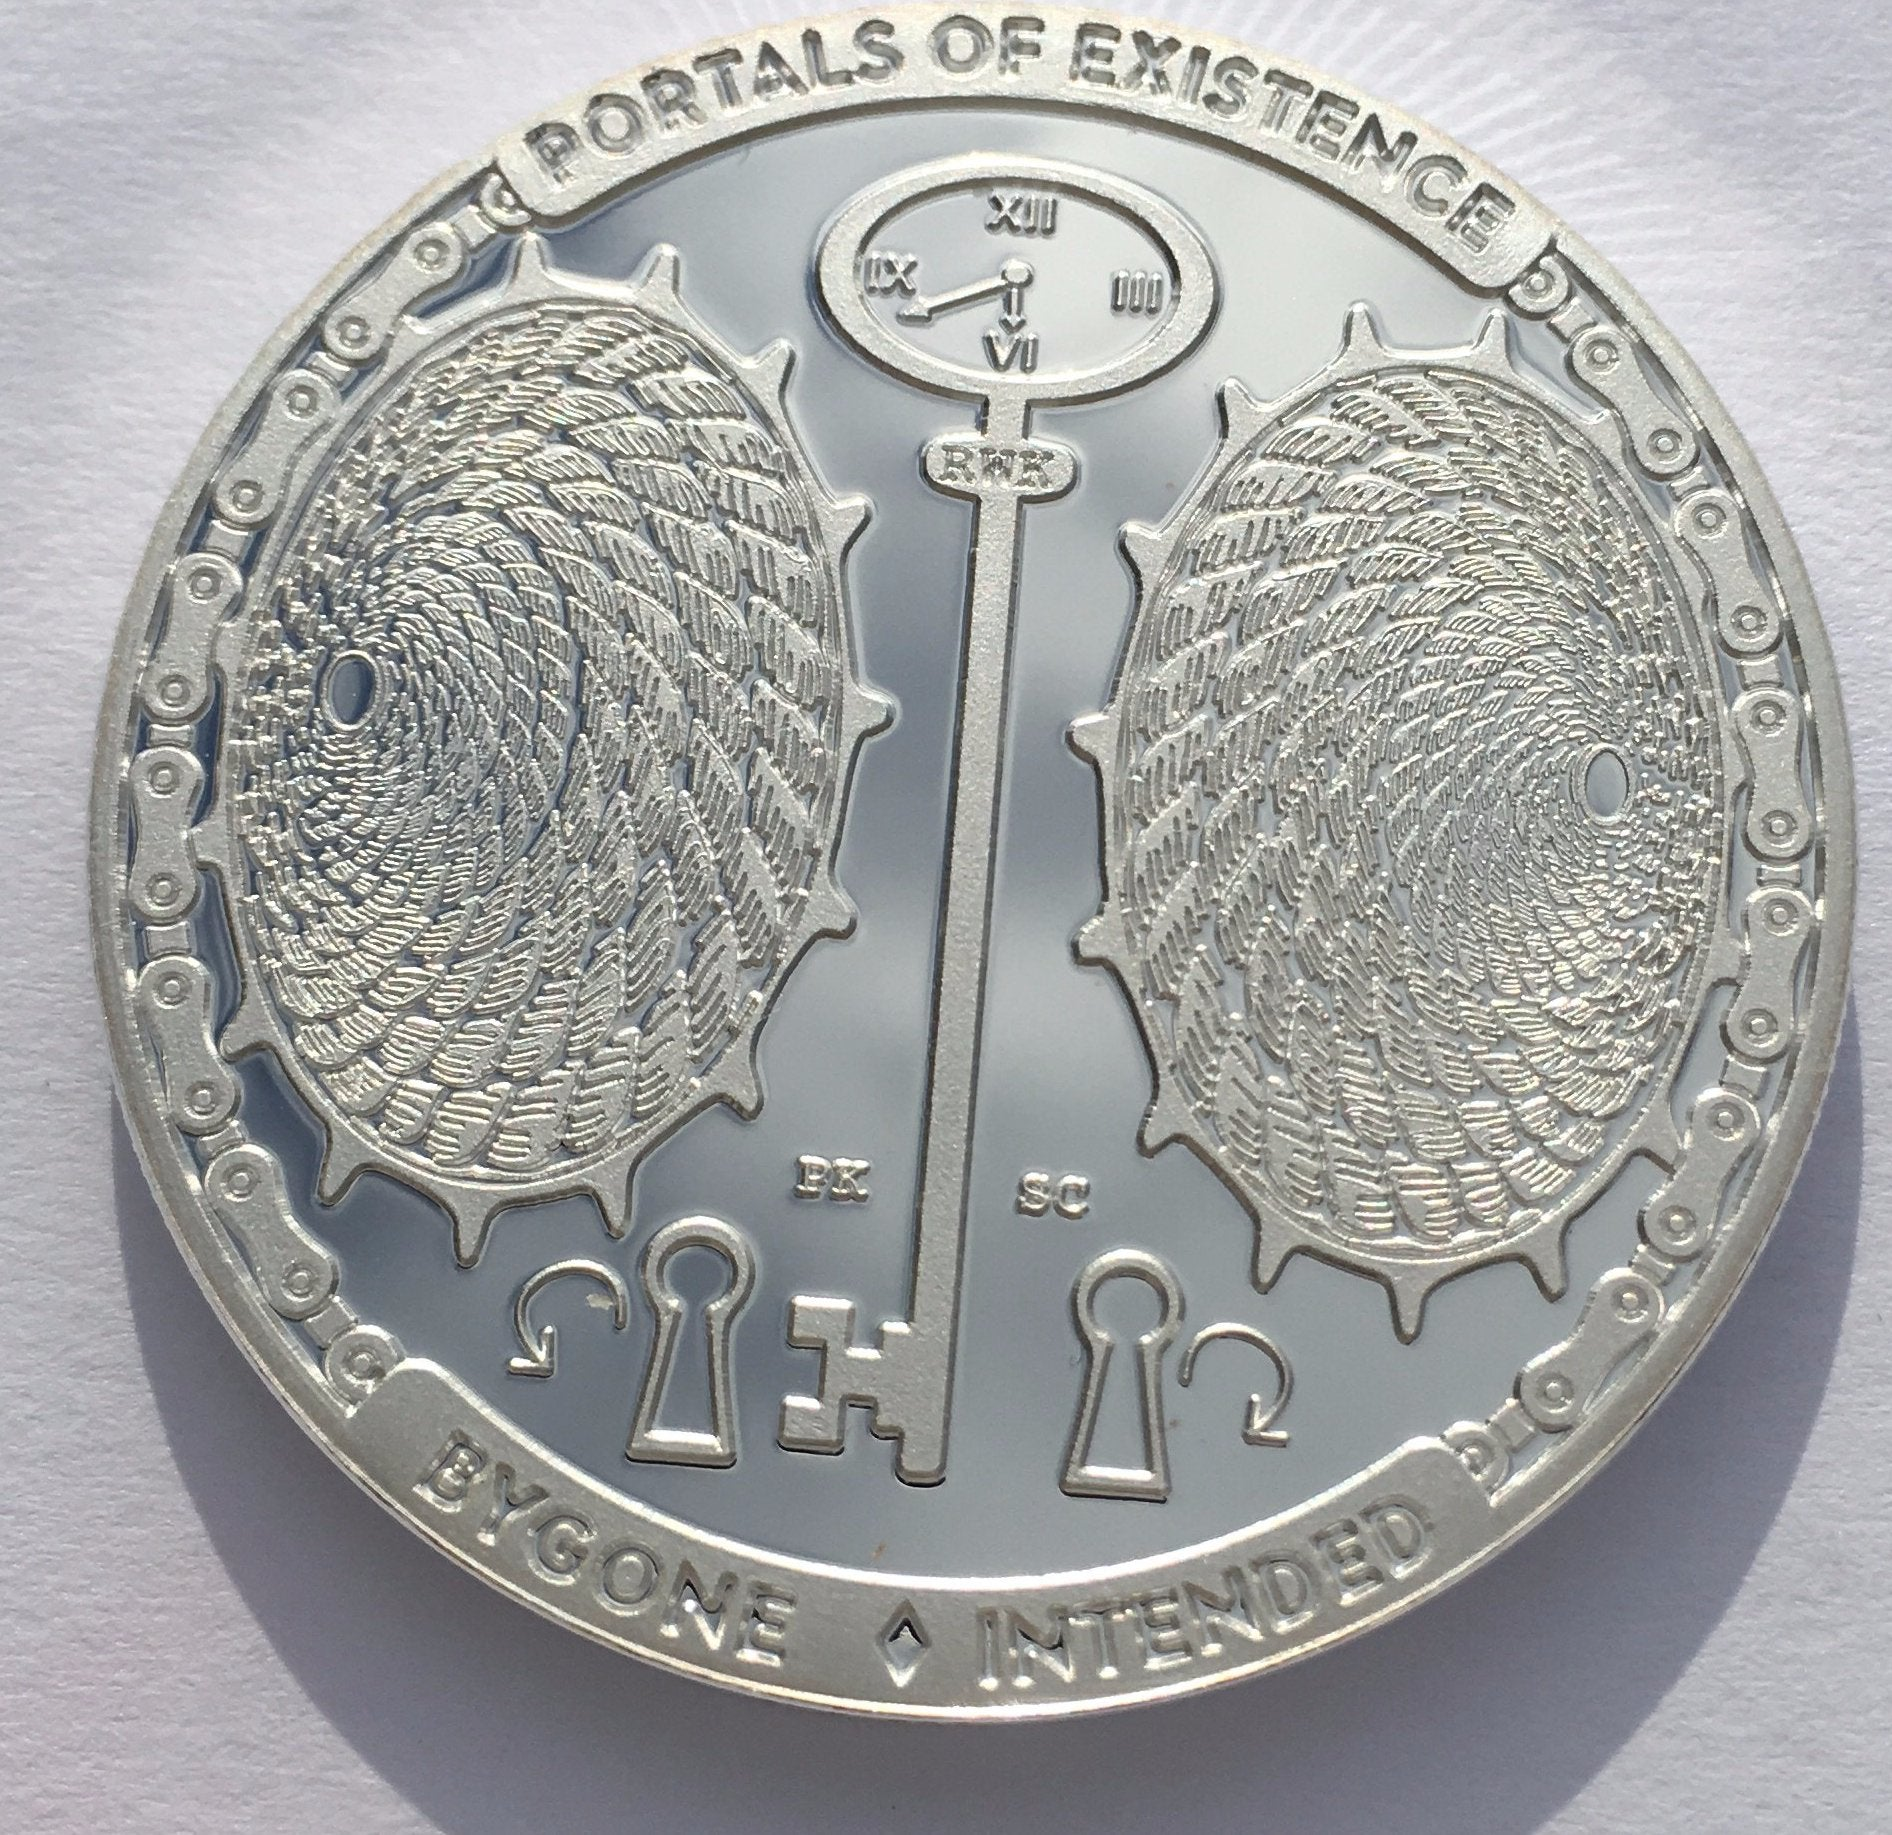 Portal Of Existence 1 oz .999 Silver Capsuled Proof-Like Round Series T.I.M.E